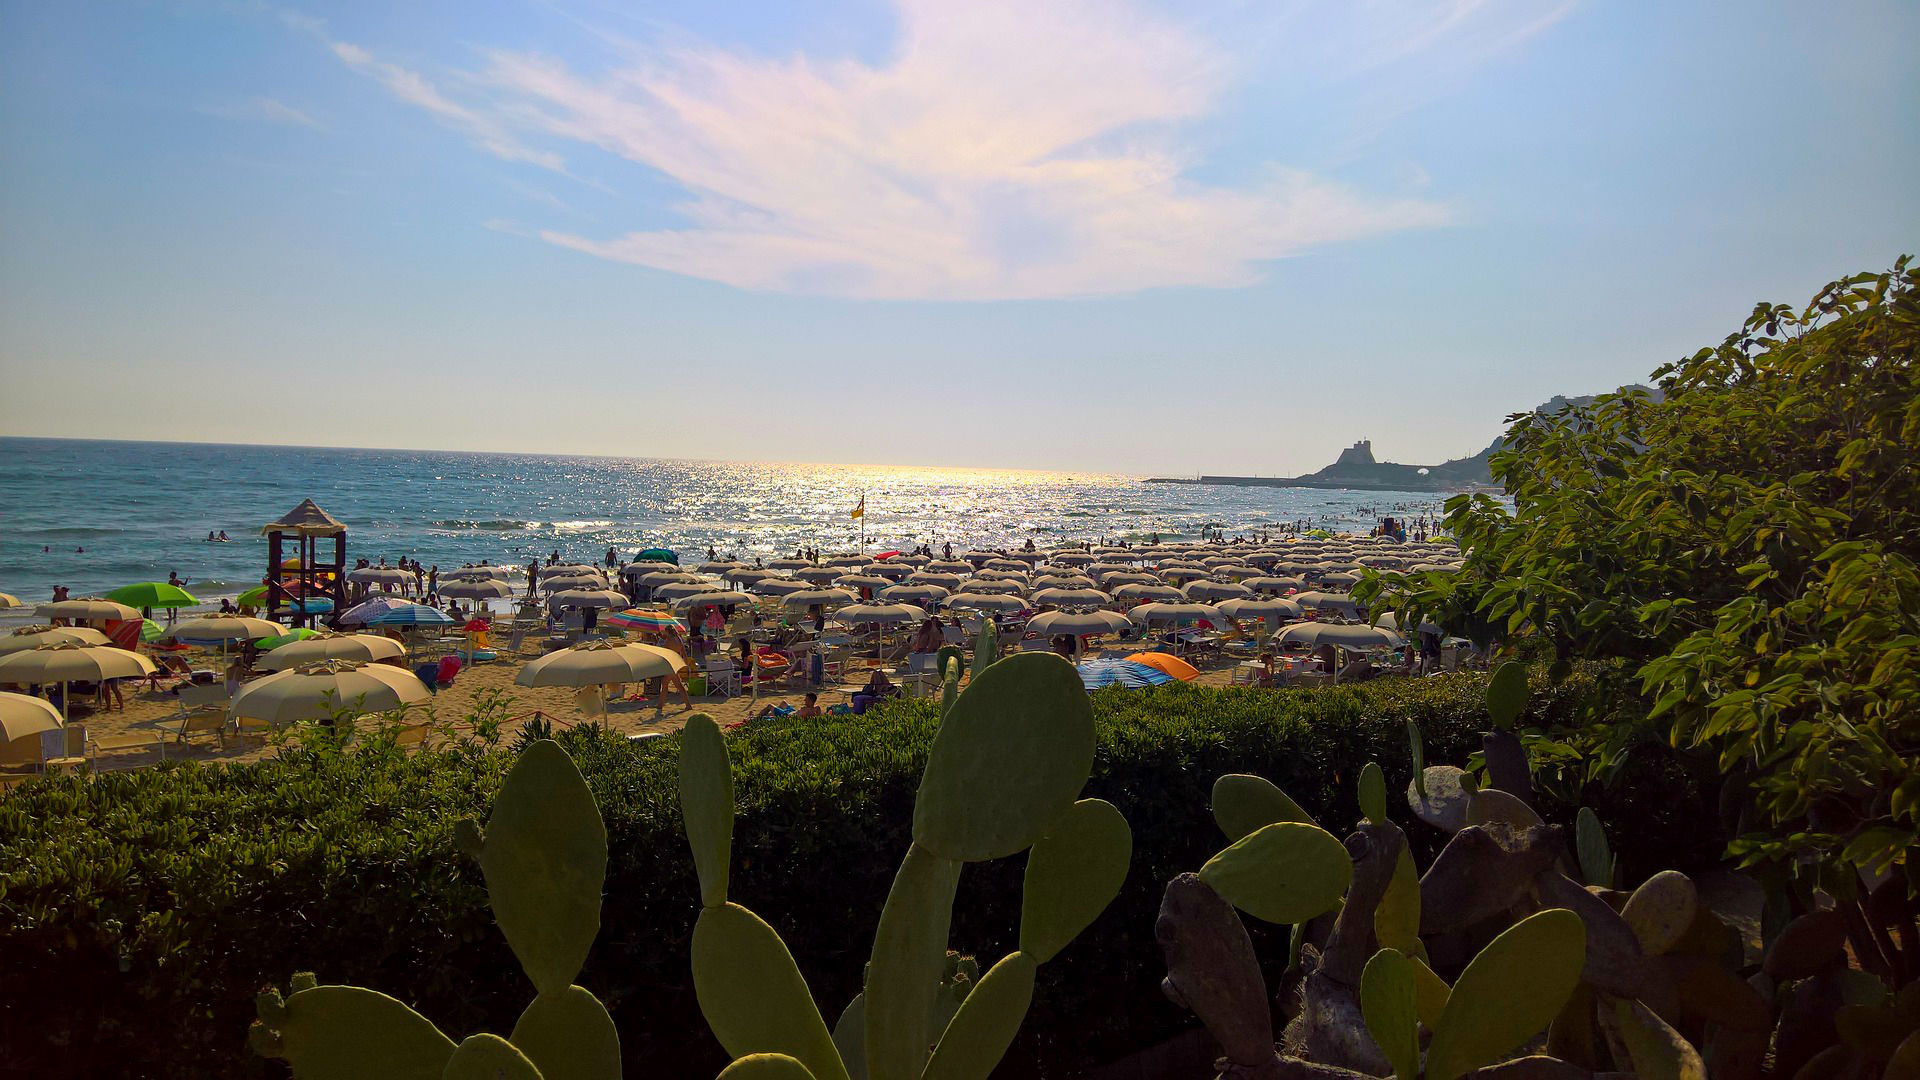 Best Lazio beaches: This guide to the best beaches near Rome includes how to get to the best Rome beaches with public transport, including how to get to Ostia and Fregene, how to get to Sperlonga, Anzio, Gaeta, Santa Severa and Santa Mariella. The best beaches in Lazio.